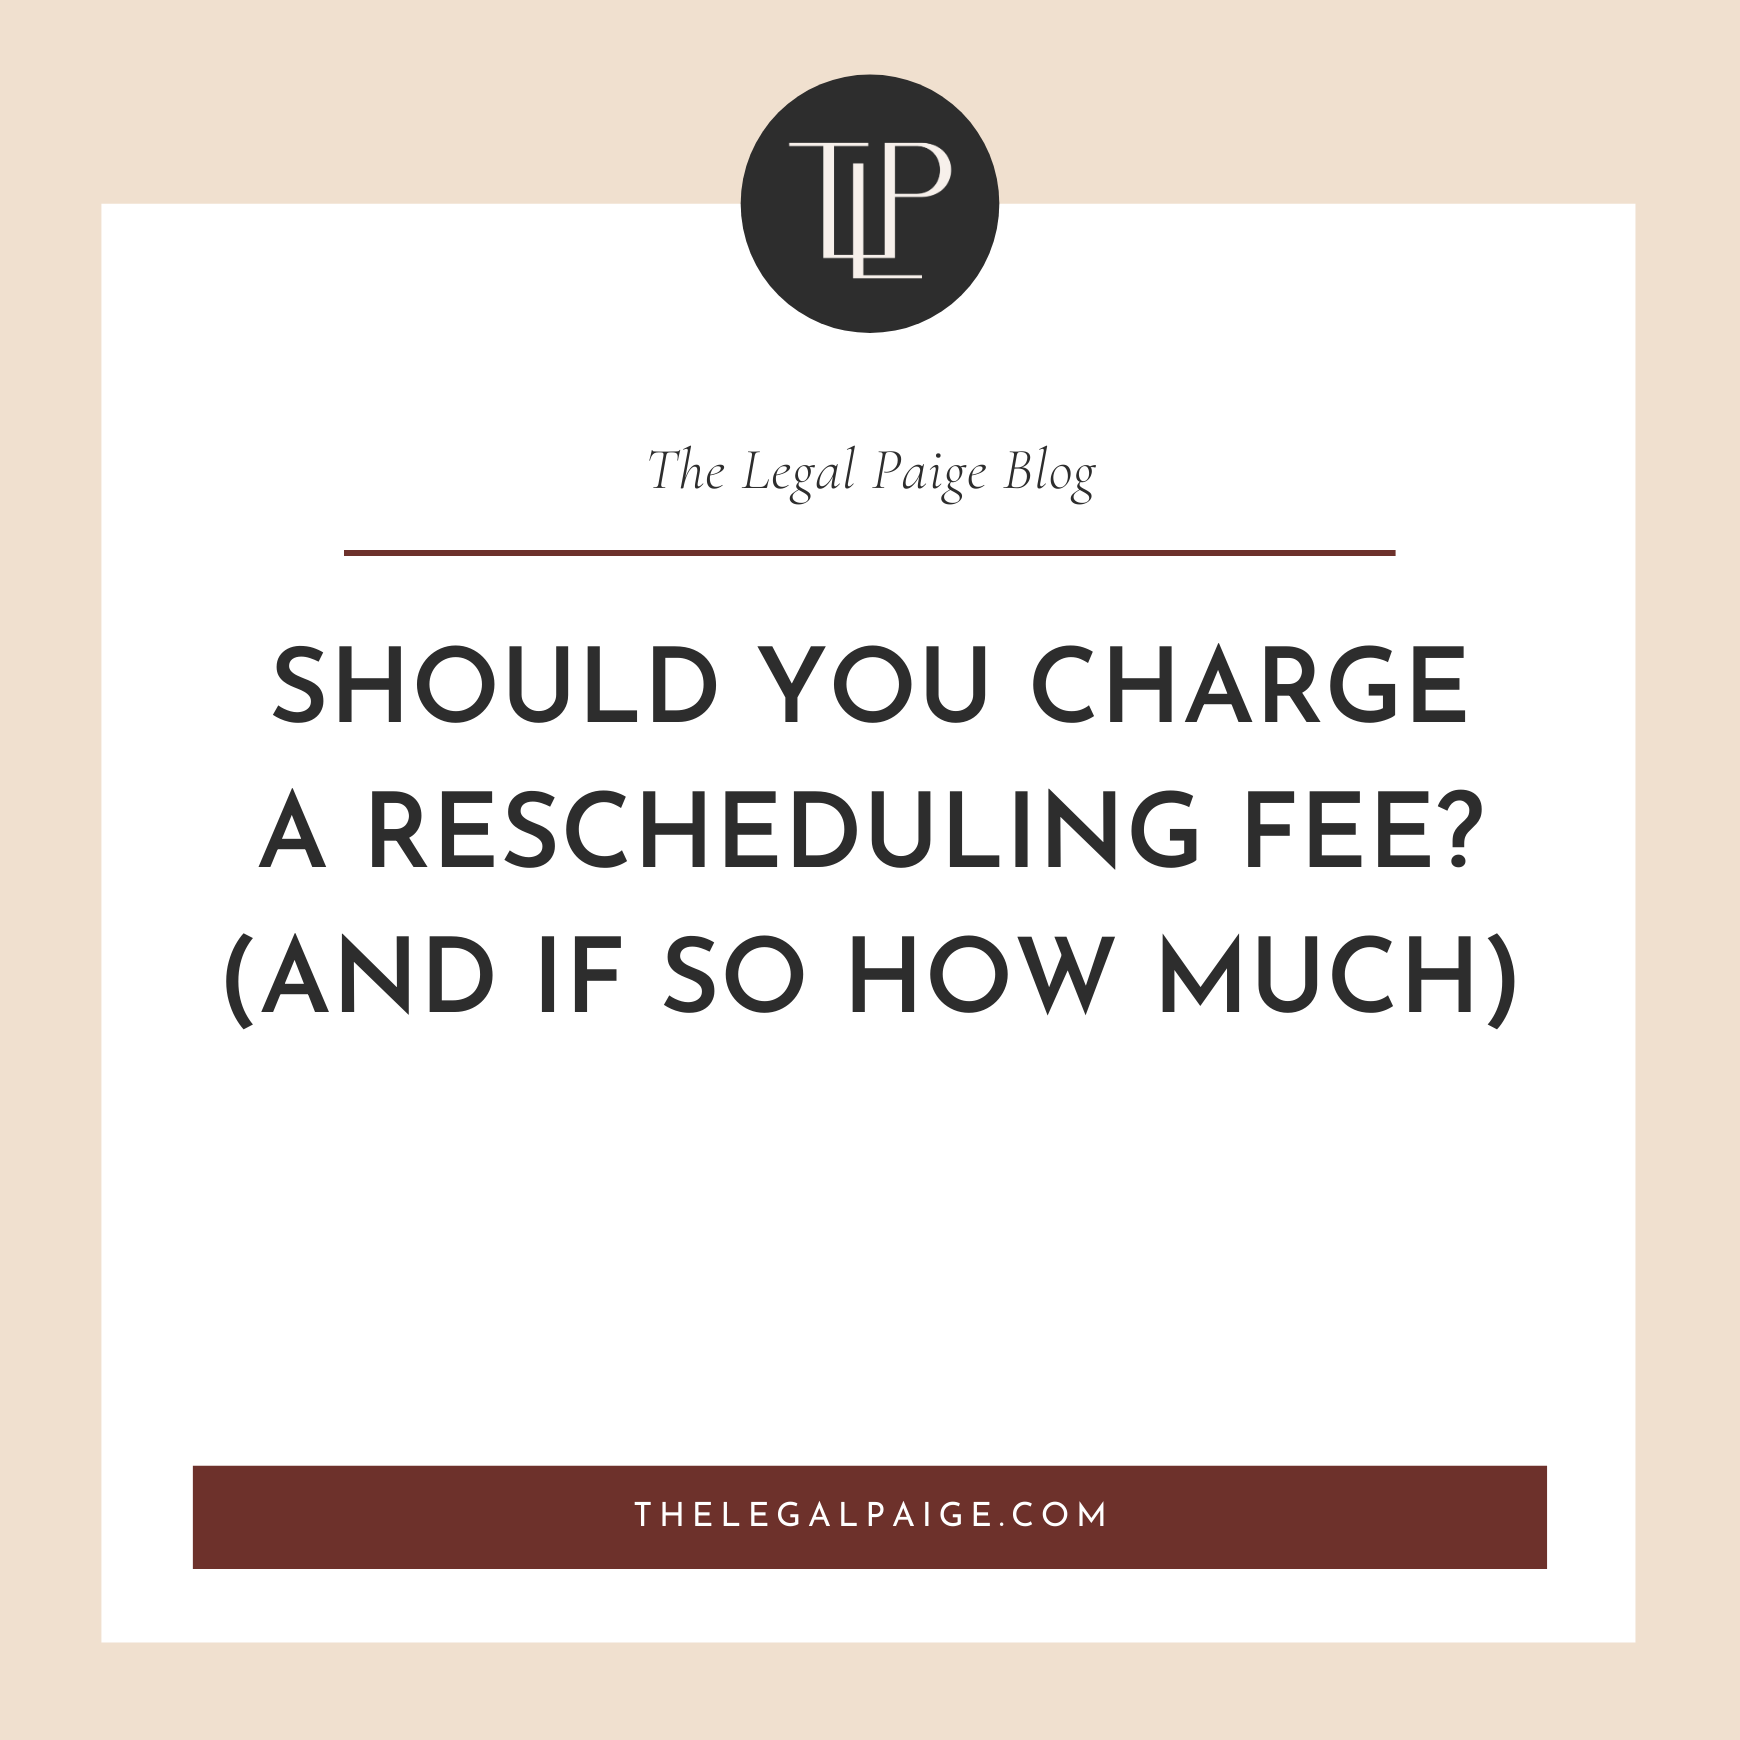 Should You Charge A Rescheduling Fee? (and if so how much)